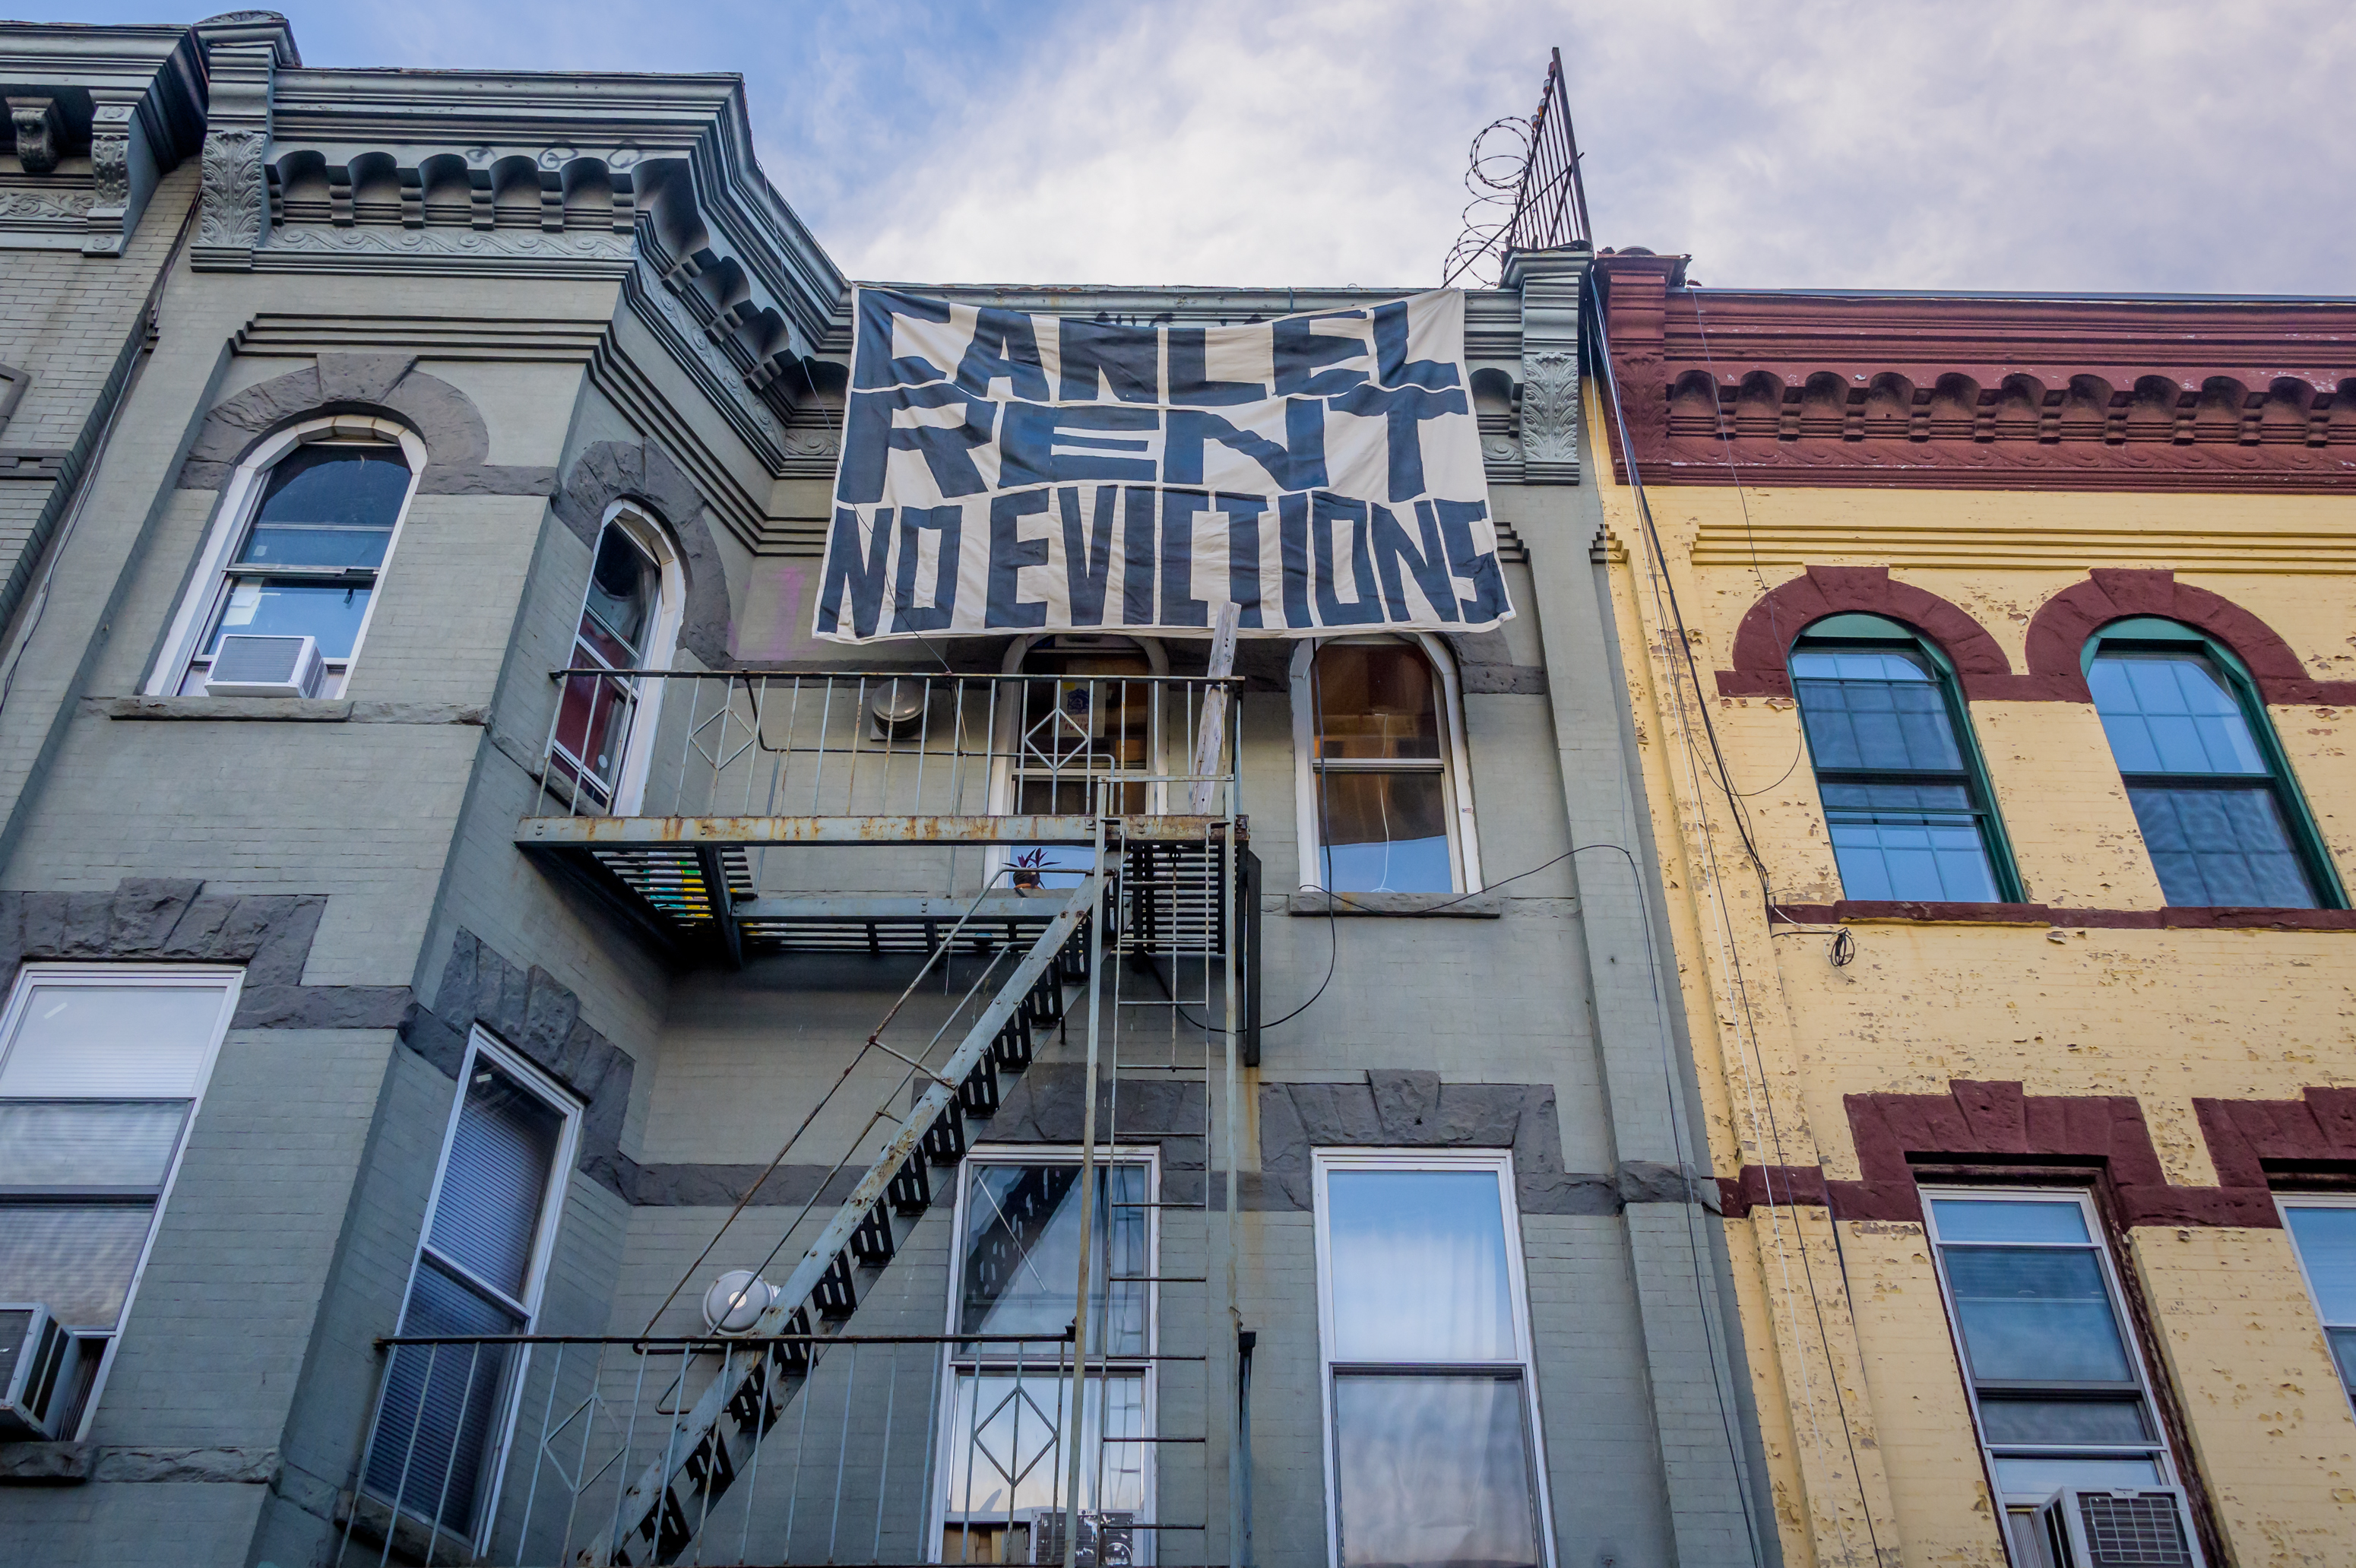 """A banner painted with """"Cancel Rent No Evictions"""" hangs off the facade of a blue, brick apartment building in Bushwick, Brooklyn."""